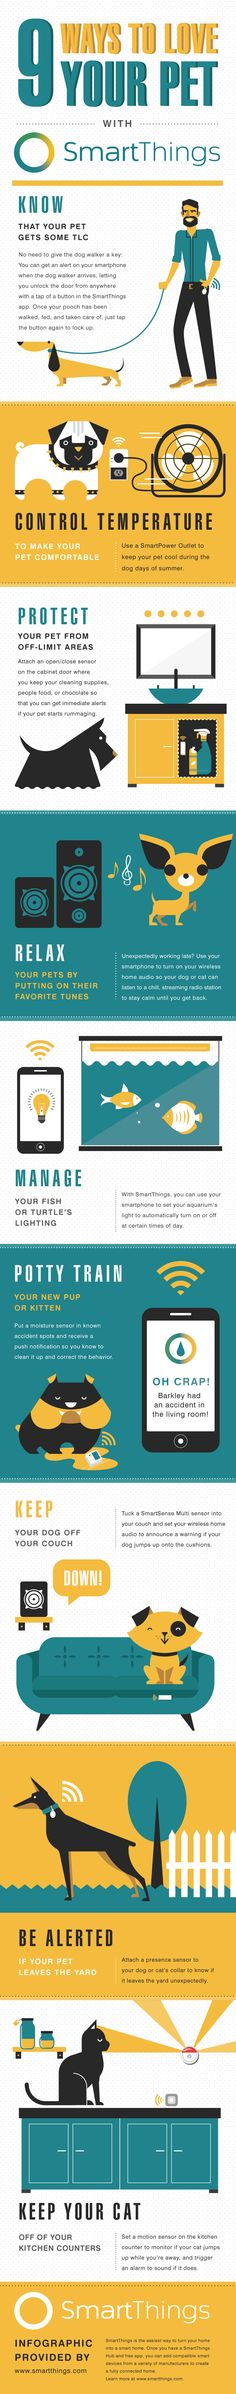 9 Ways to Love Your Pet